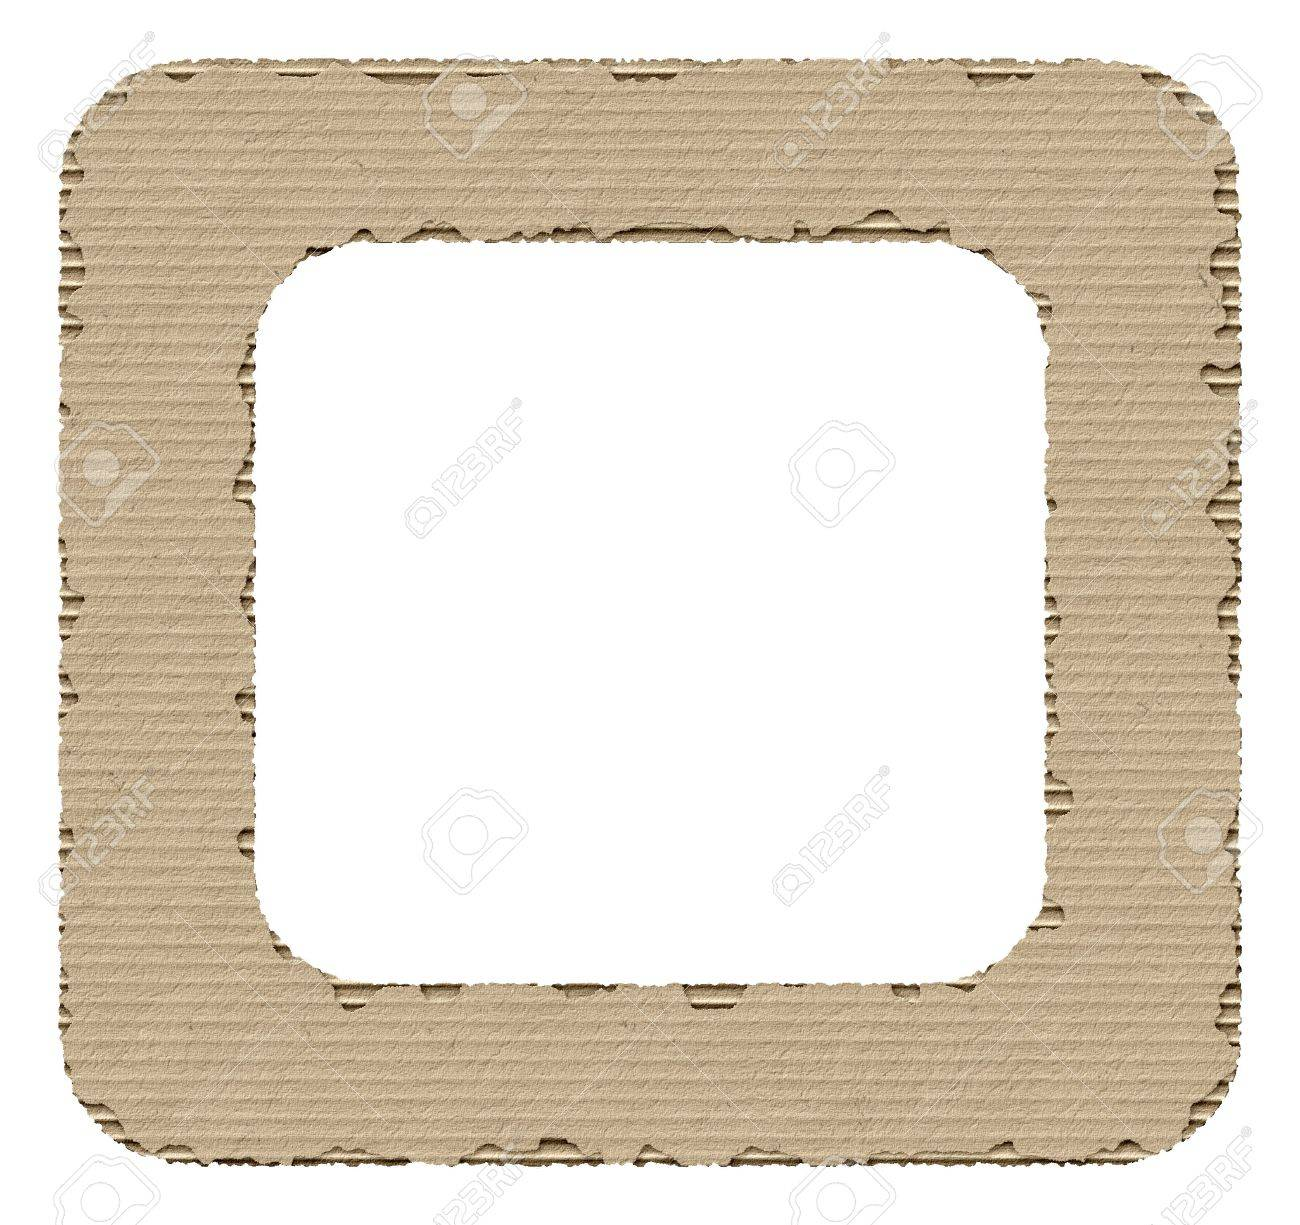 Torn Cardboard Frame Stock Photo, Picture And Royalty Free Image ...